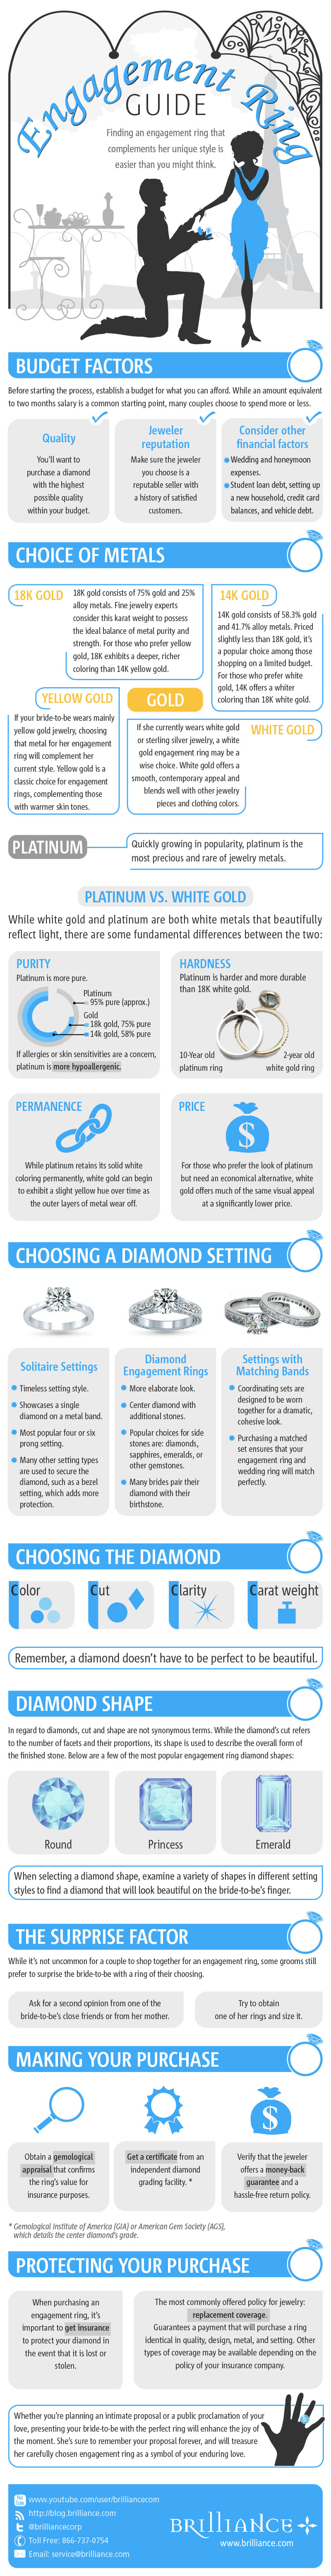 Guide to Choosing an Engagement Ring